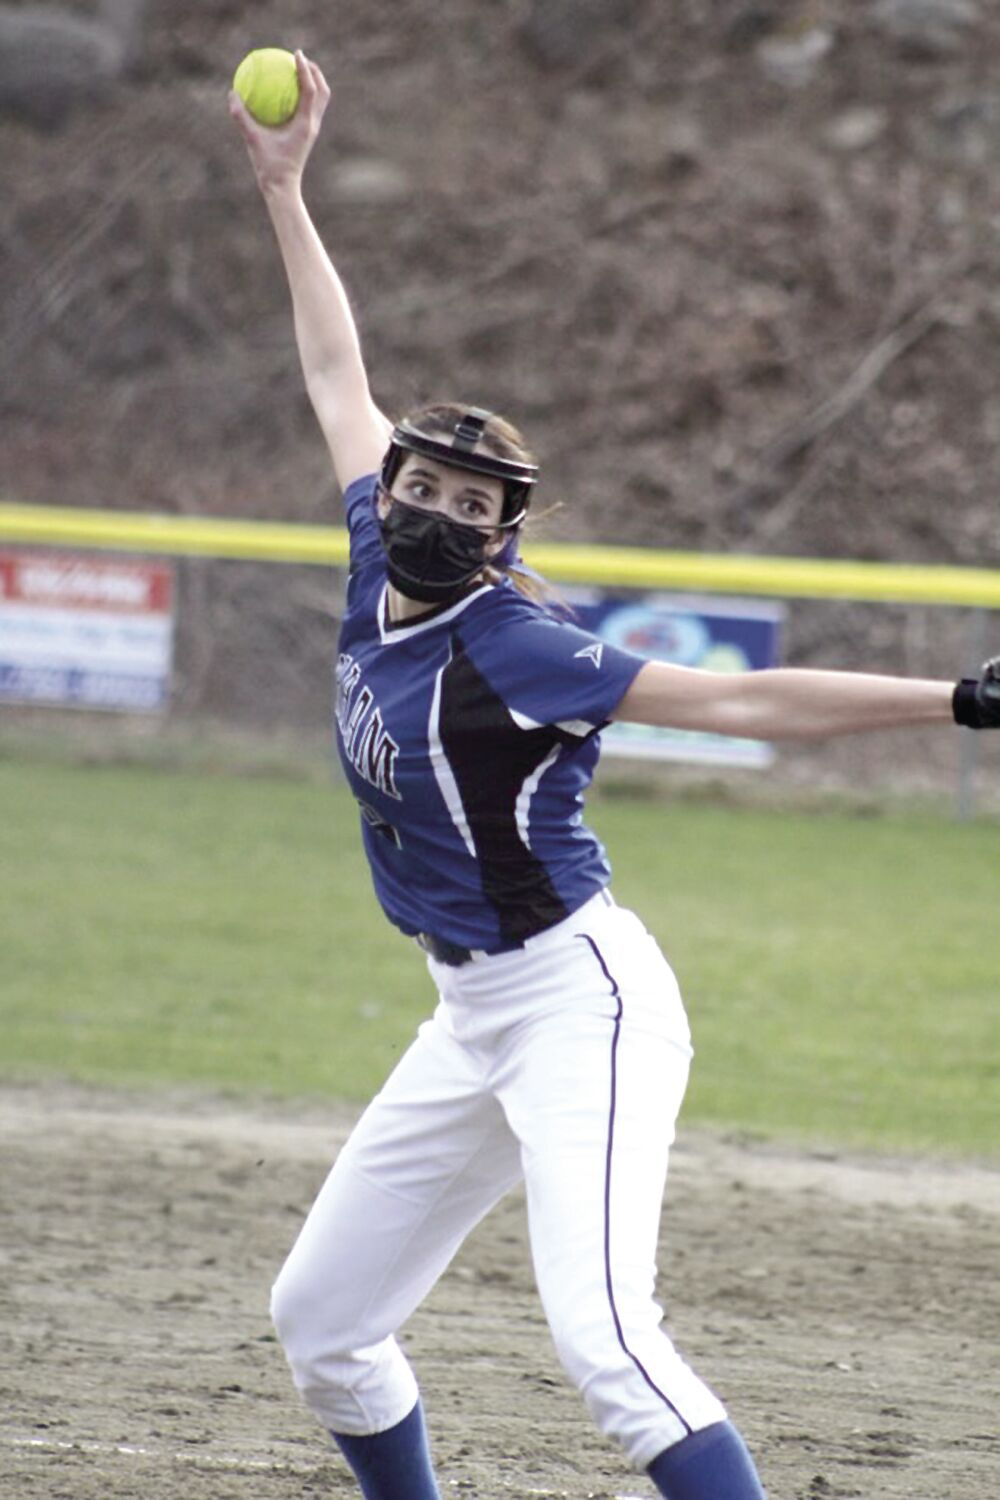 Gorham High Softball - Bry Poirier pitching